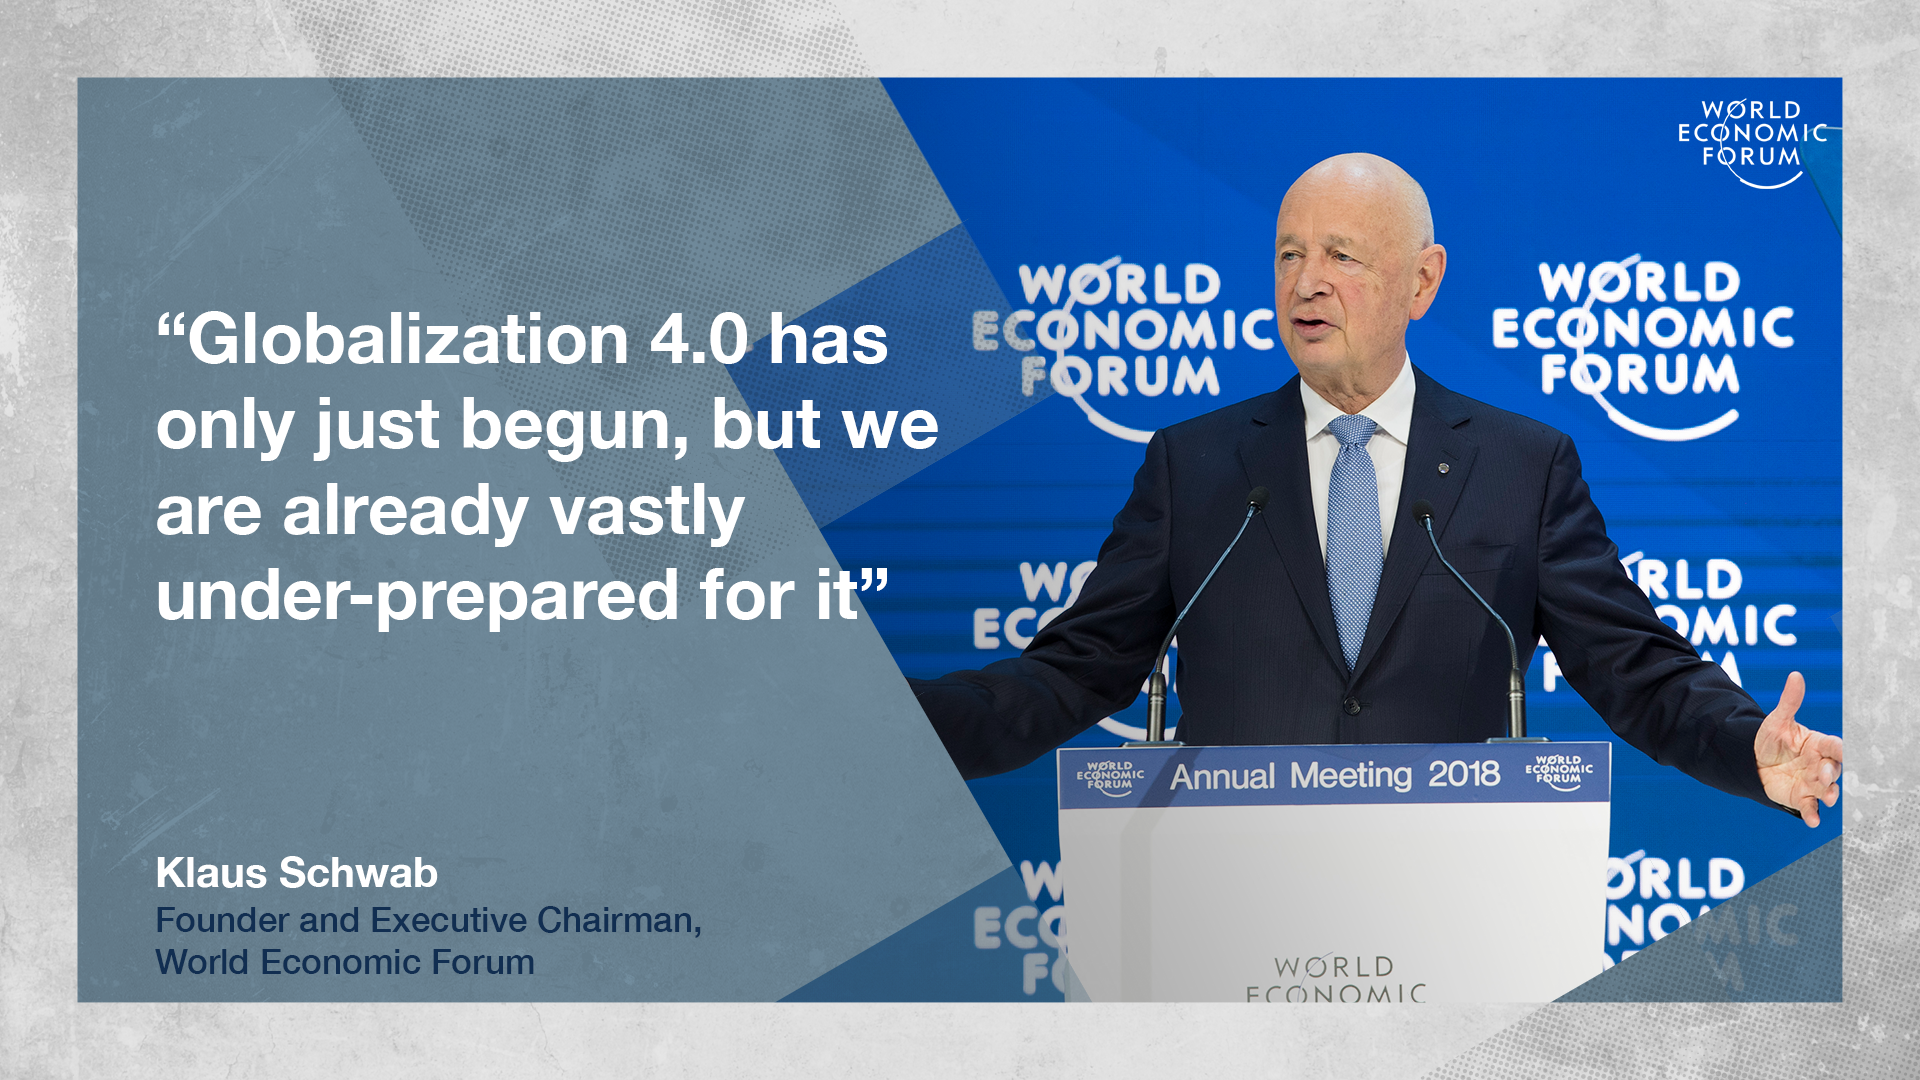 Globalization 4 0 will only be effective if it can rectify the economic injustices propagated by earlier waves of globalization